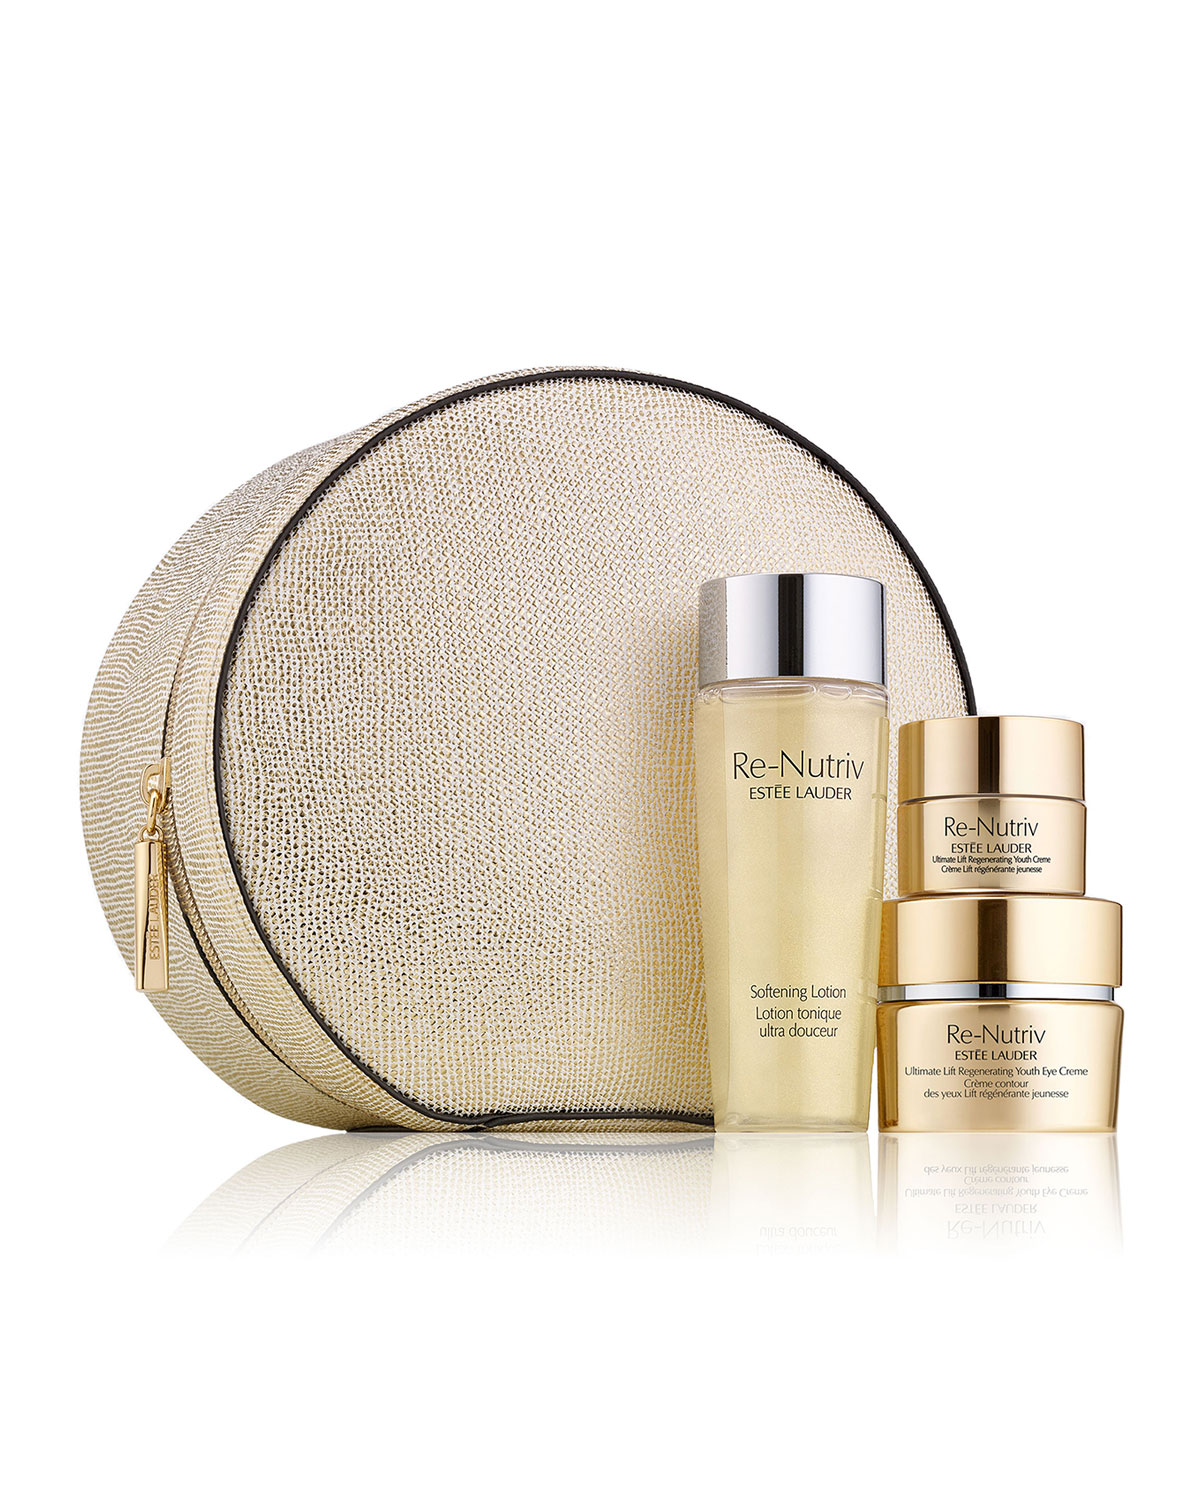 Estee Lauder The Secret of Infinite Beauty: Ultimate Lift Regenerating Youth Collection for Eyes